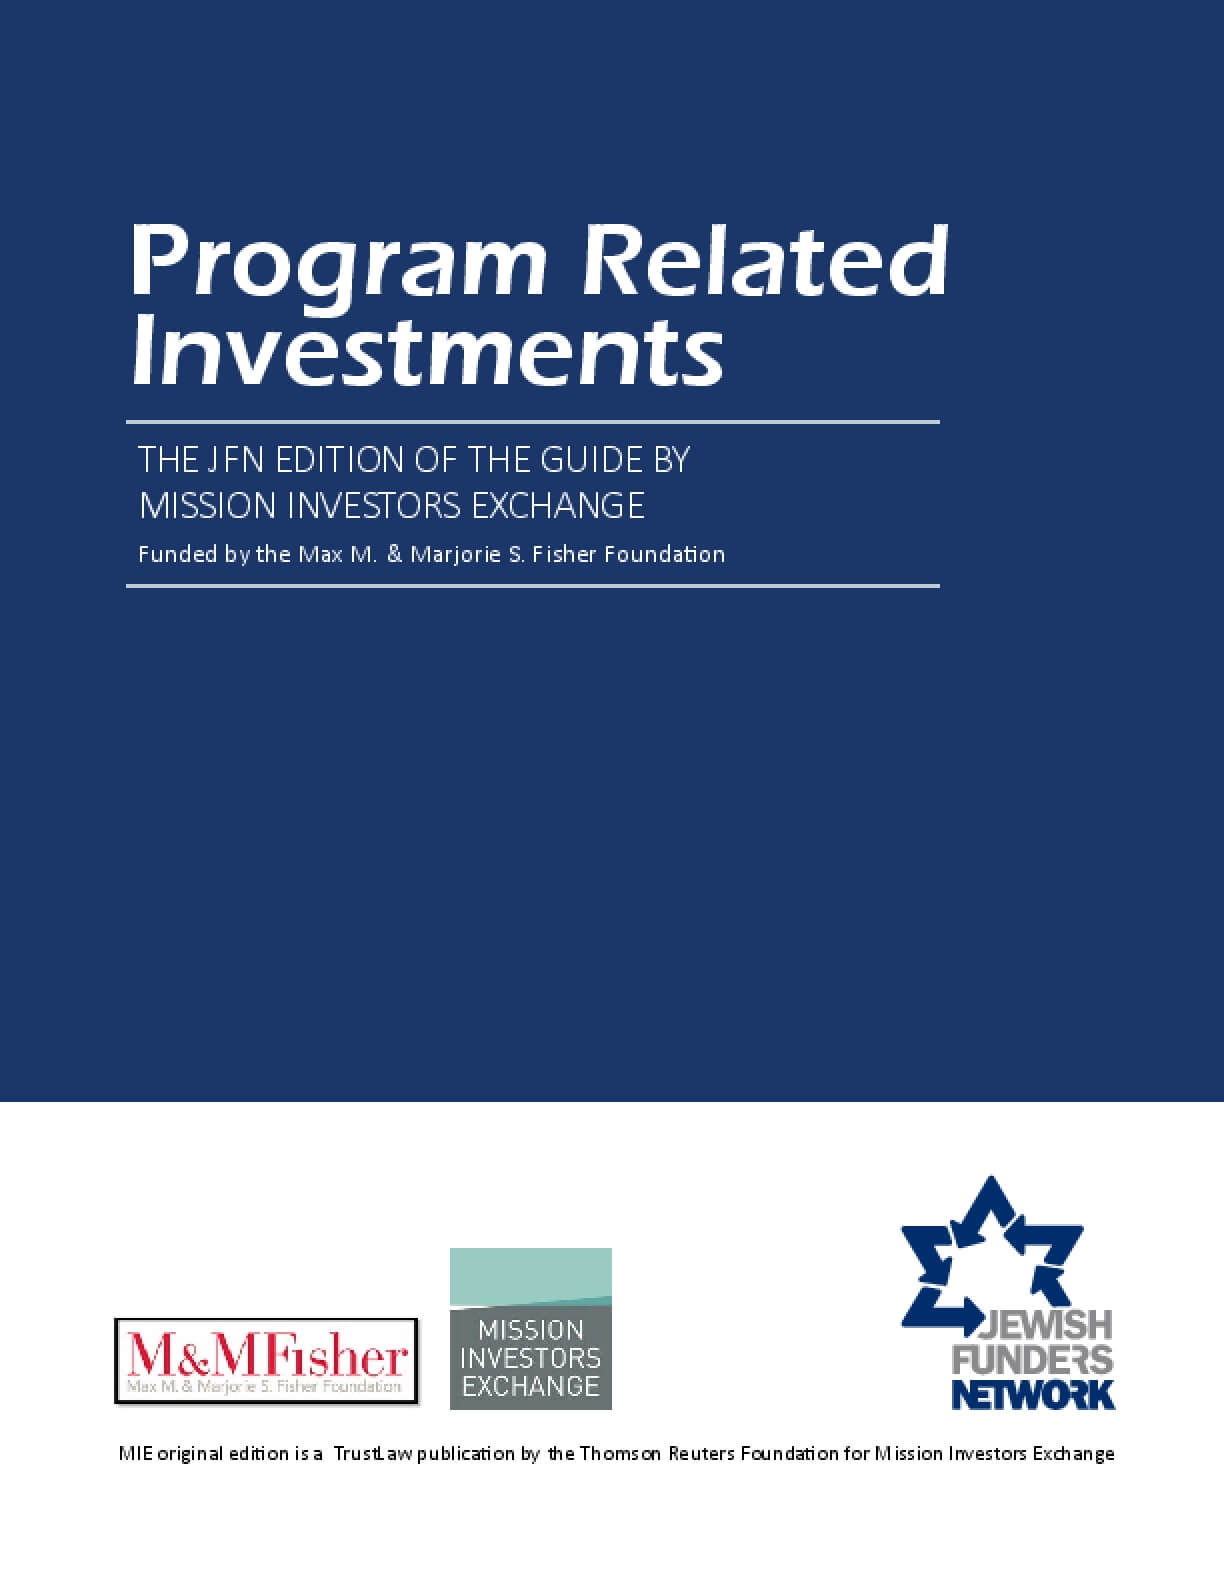 Program Related Investments: The JFN Edition of the Guide by Mission Investors Exchange